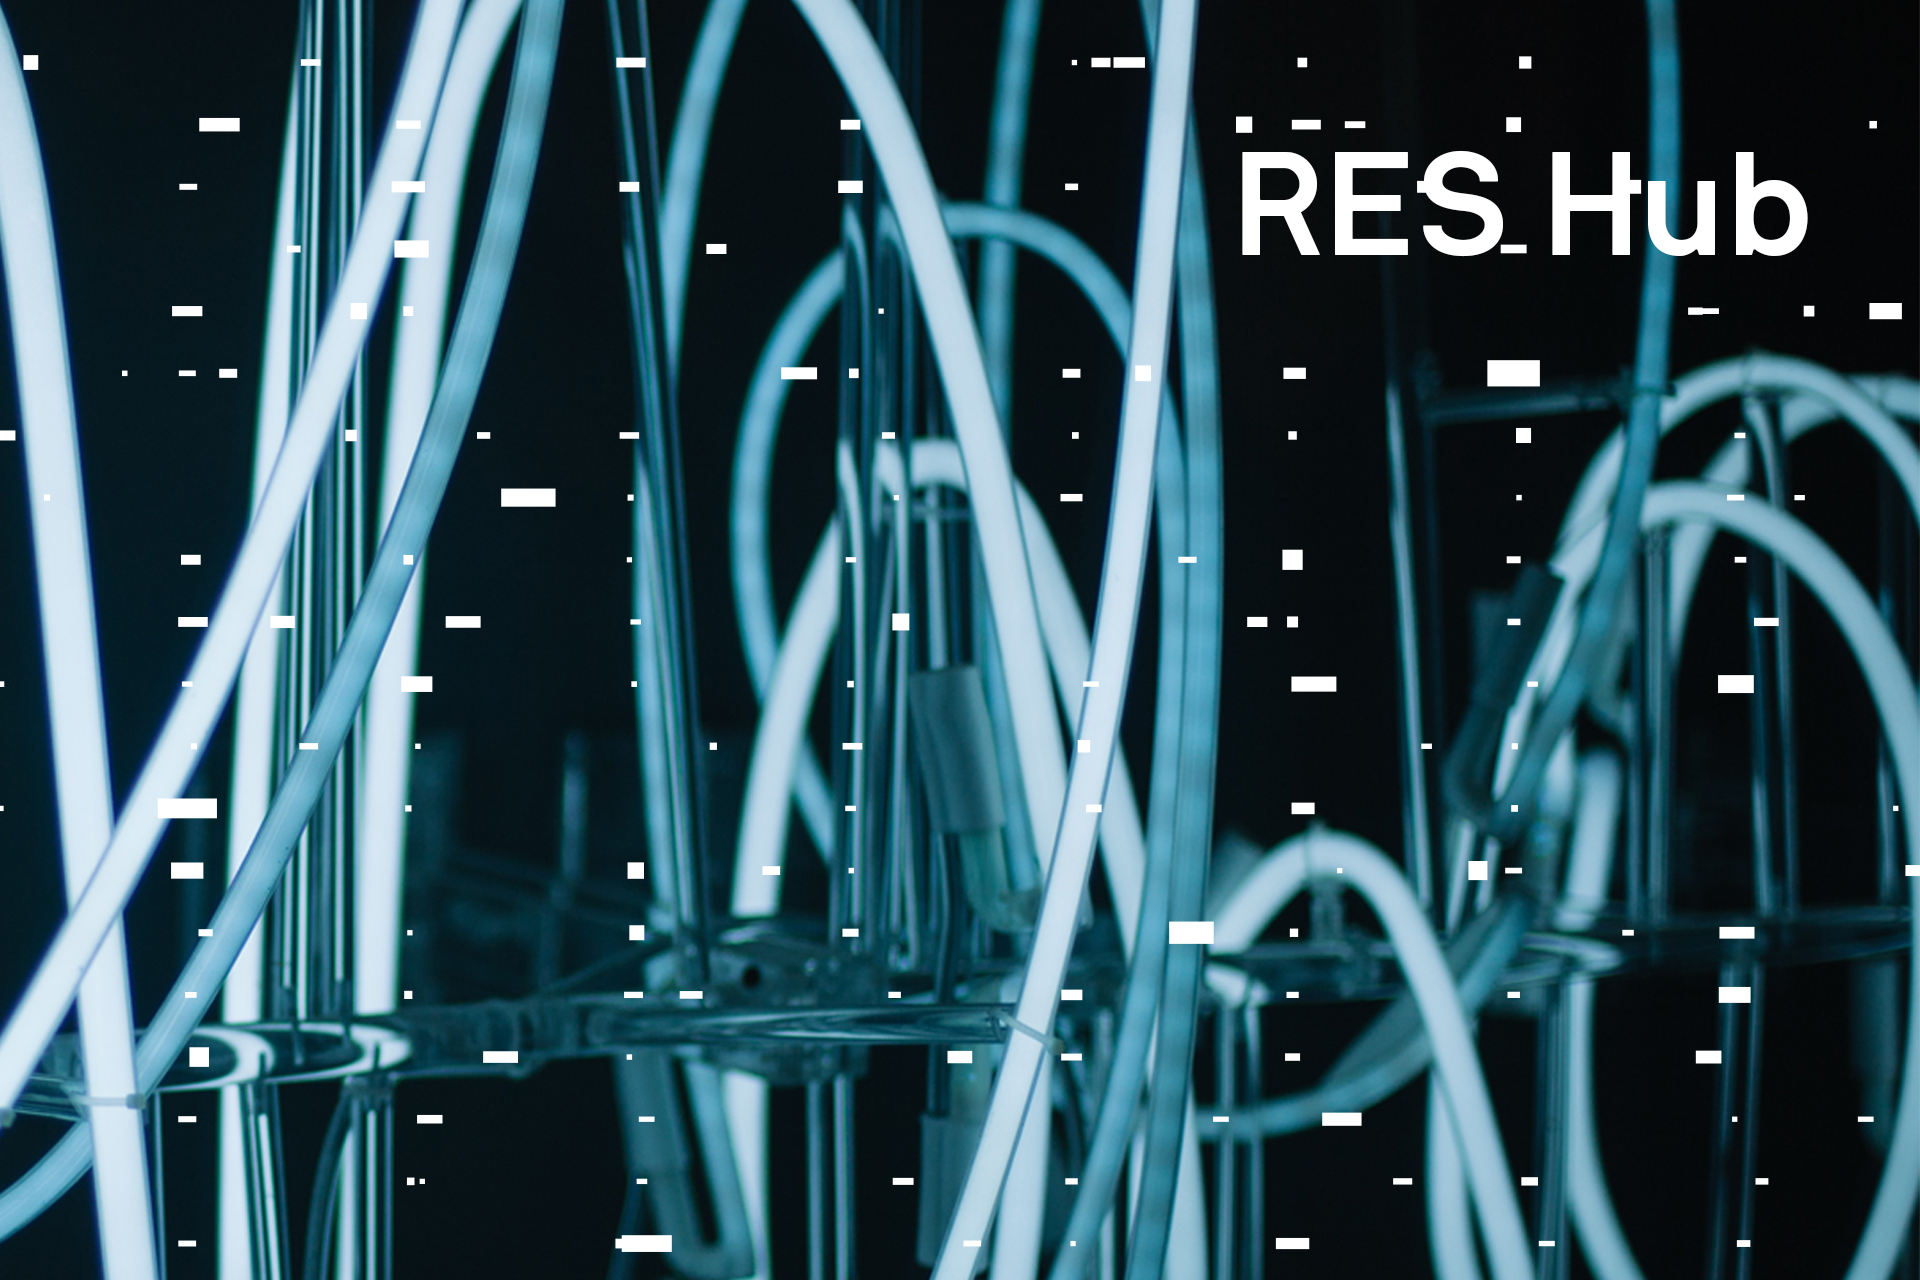 Introducing the RES Hub!